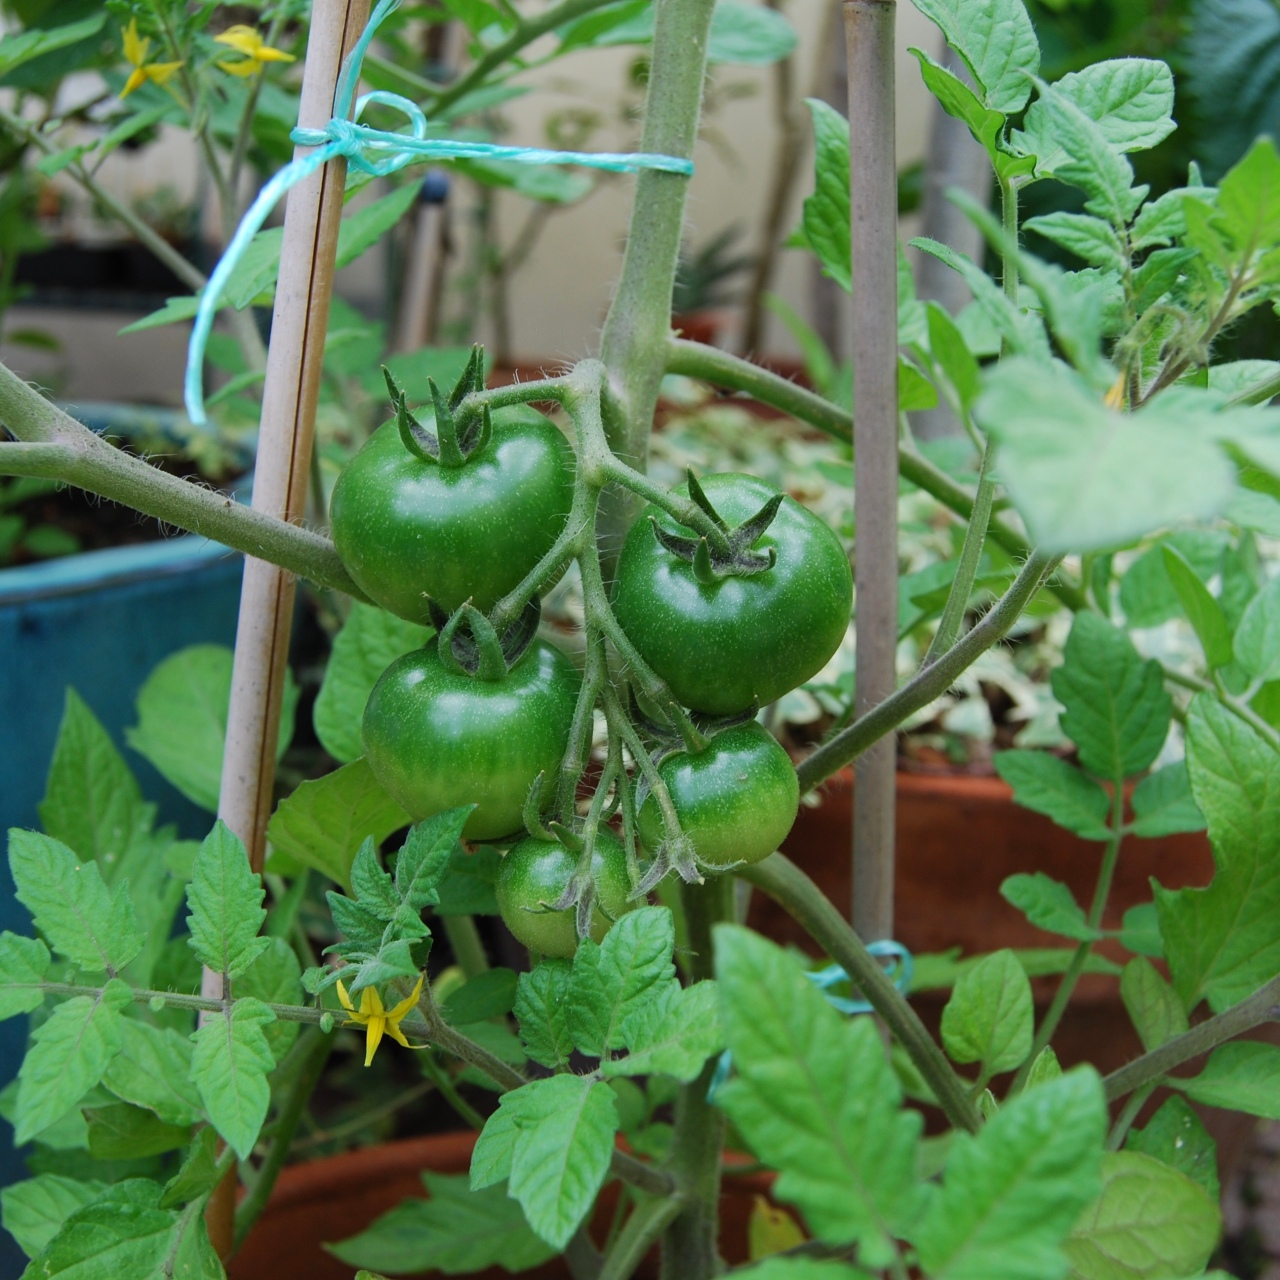 I'm growing 2 kinds of Japanese tomatos this year